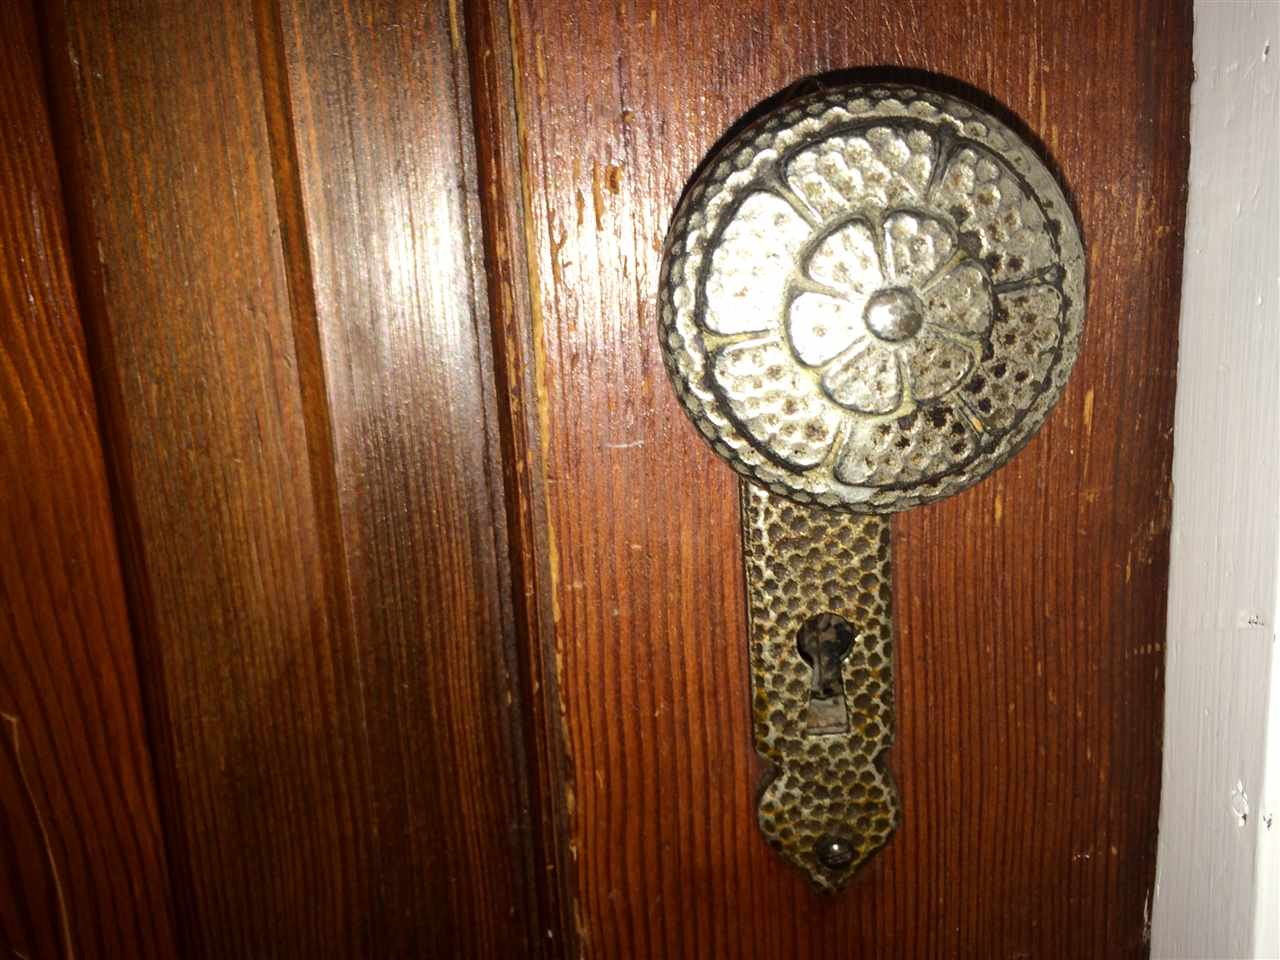 Original hardware for door knobs